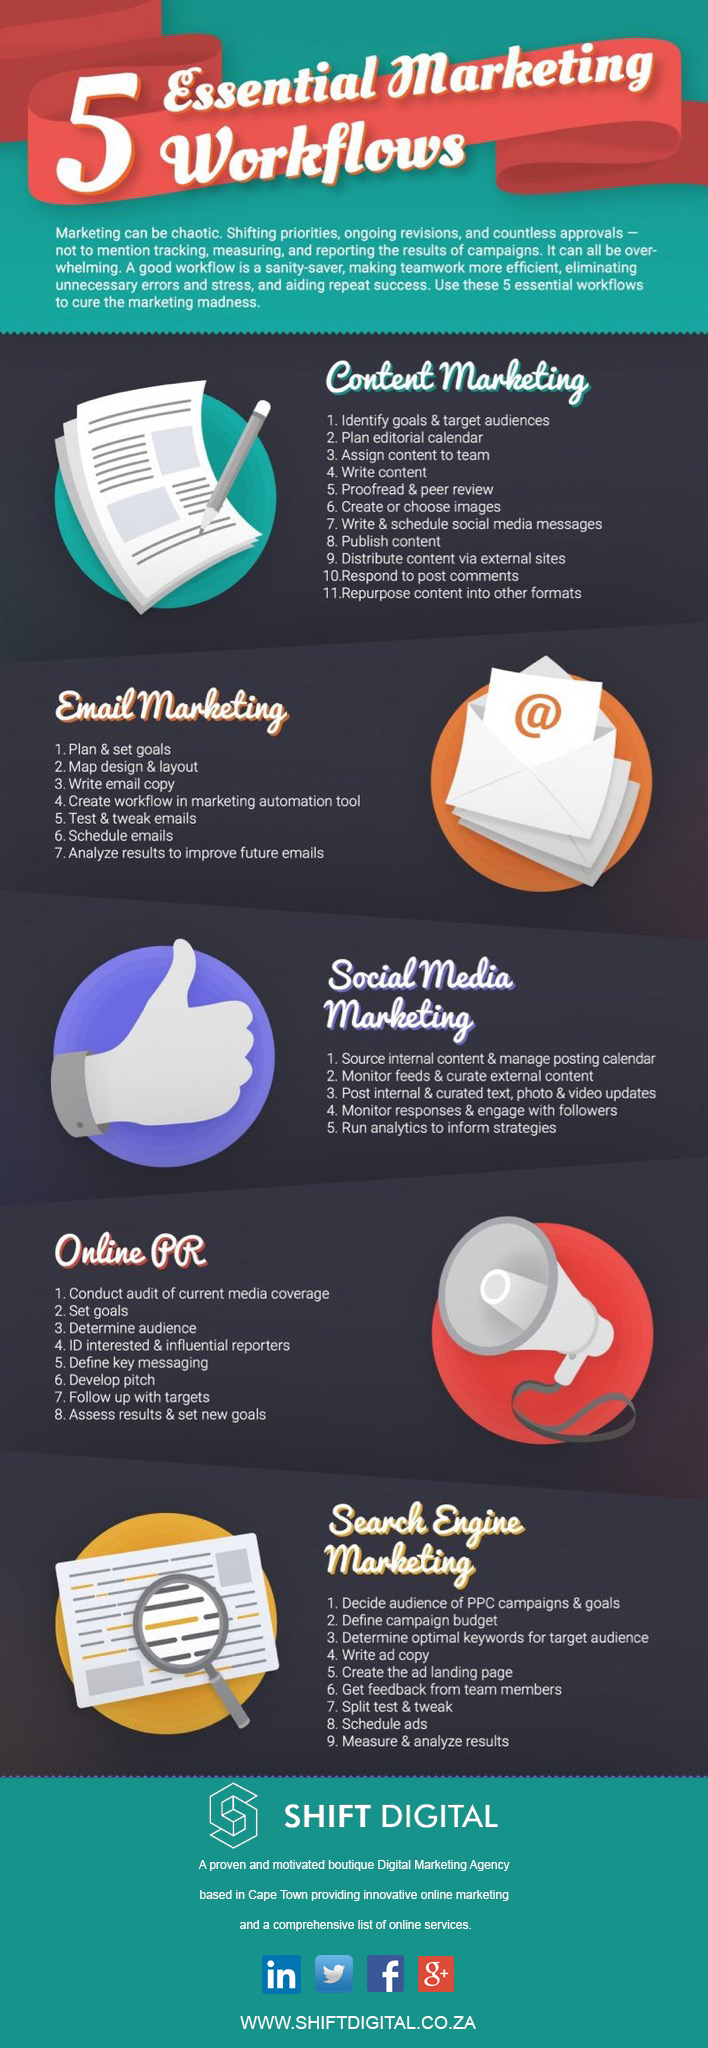 Shift Digital Marketing Essentials